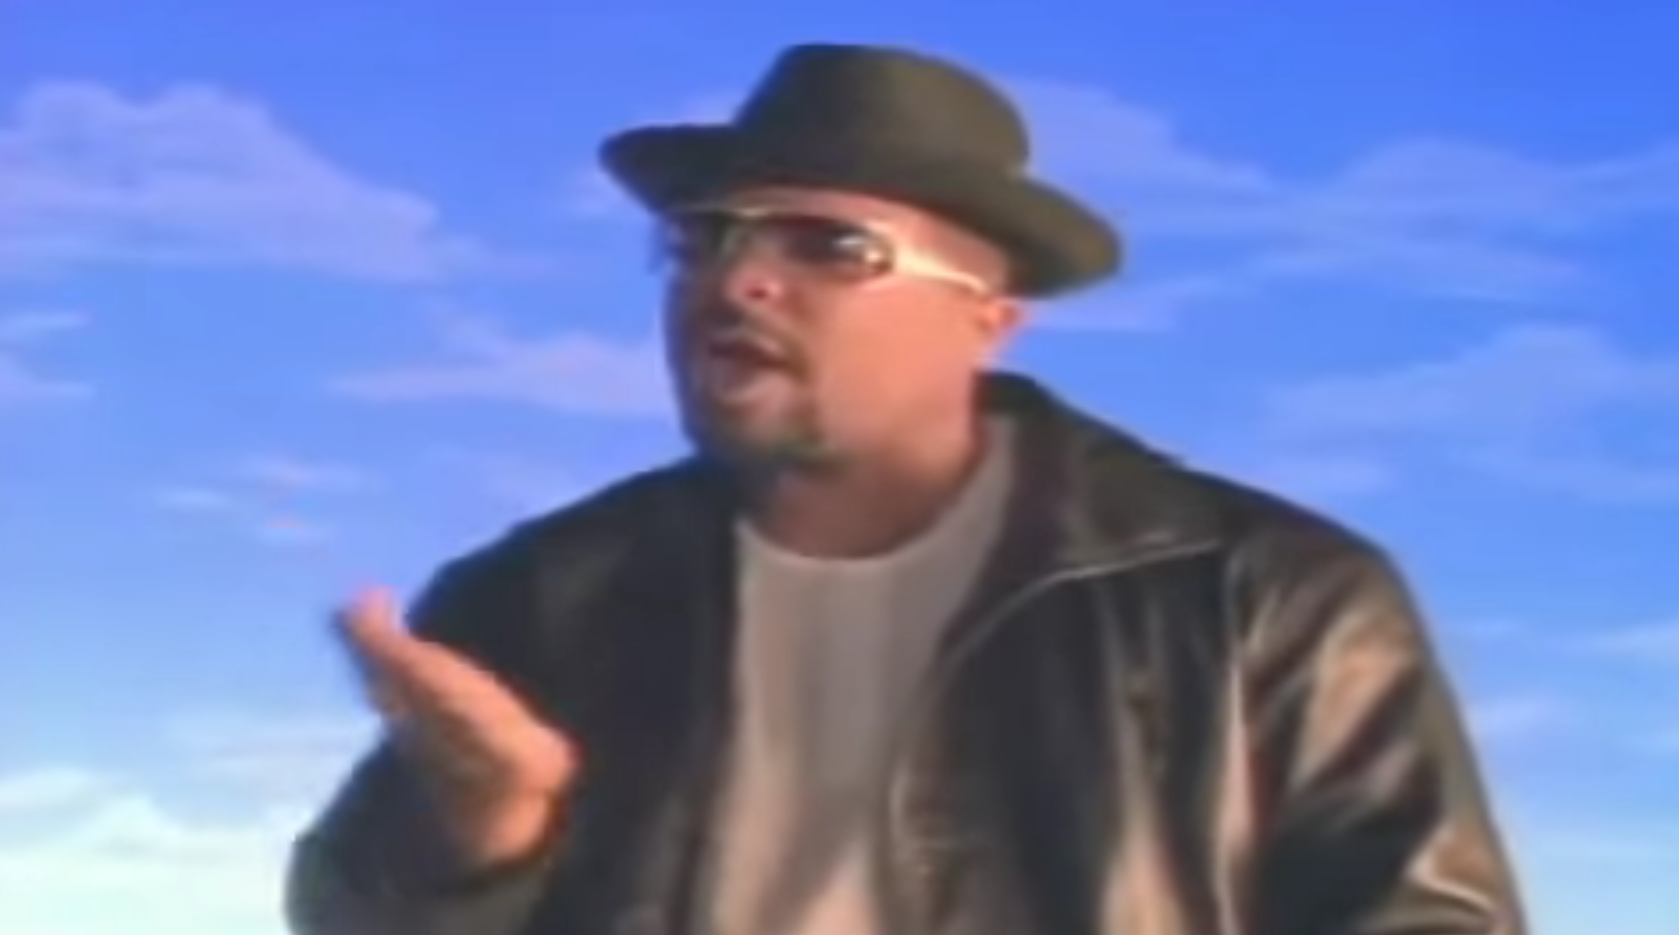 If you've been texting Sir Mix-A-Lot and he hasn't responded since 2012, you probably need to update your address book.